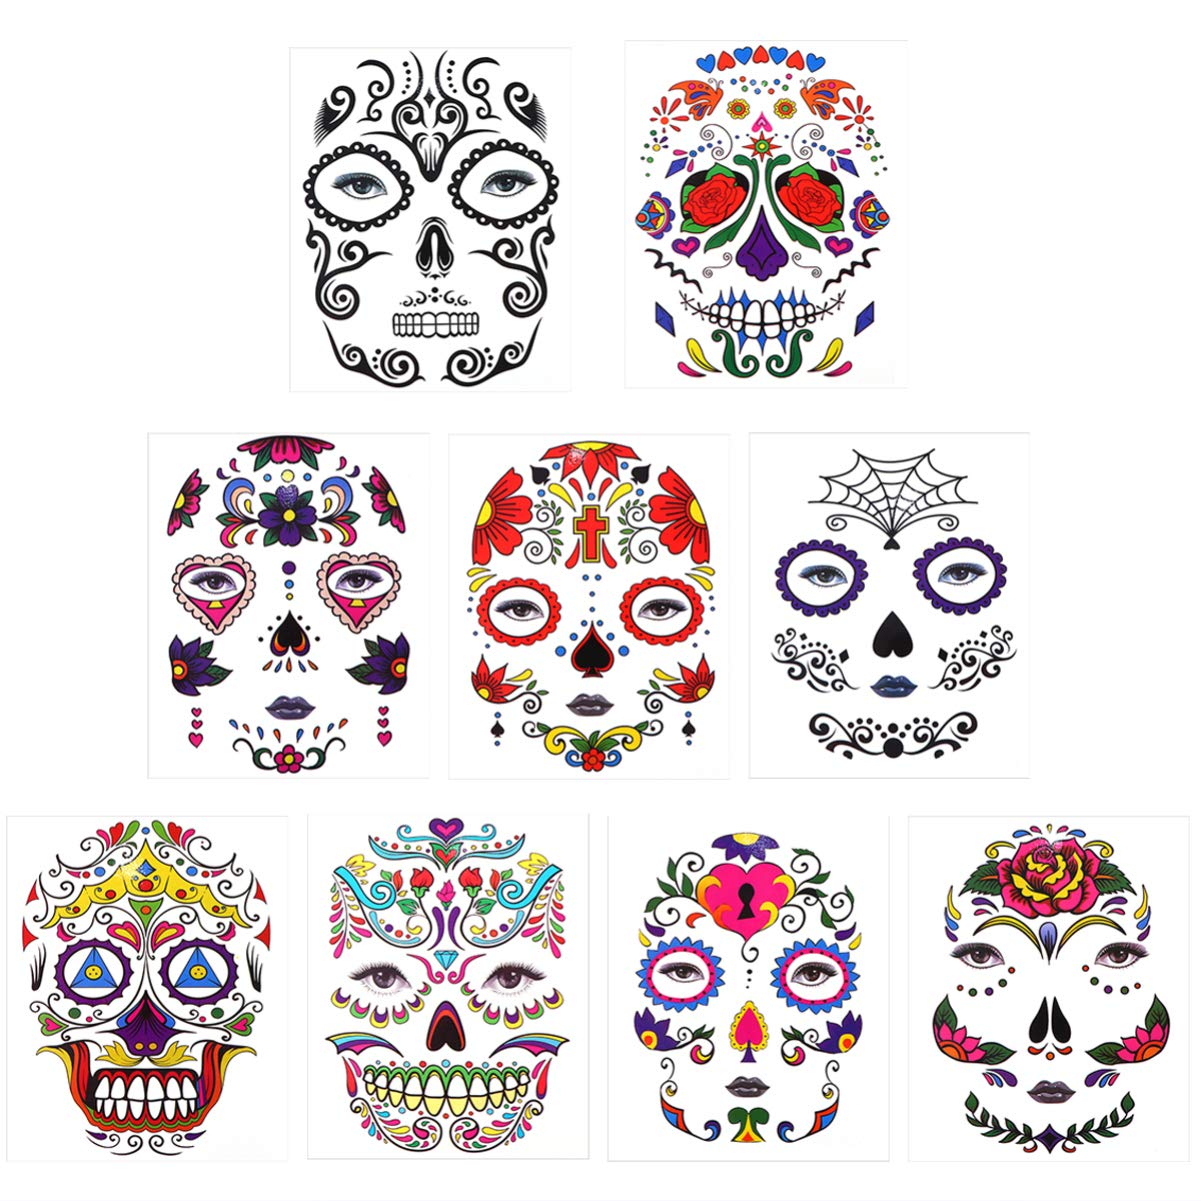 Minkissy 9Pcs Day of the Dead Sugar Skull Tattoos Waterproof Halloween Face Temporary Tattoos Stickers for Adults Kids